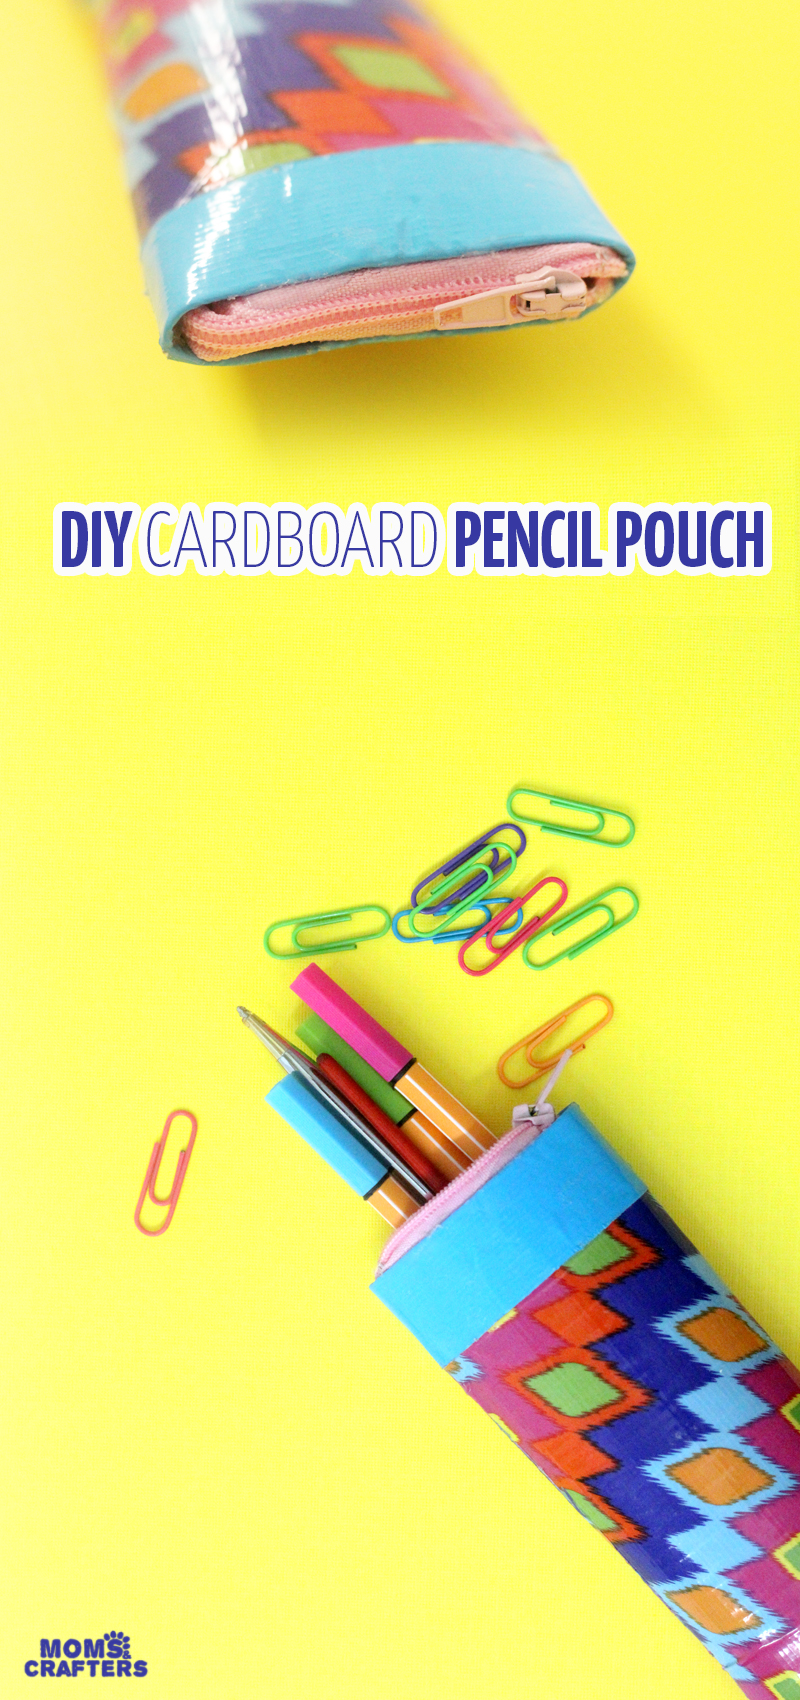 Pencil Pouch from Cardboard Tubes - Moms and Crafters